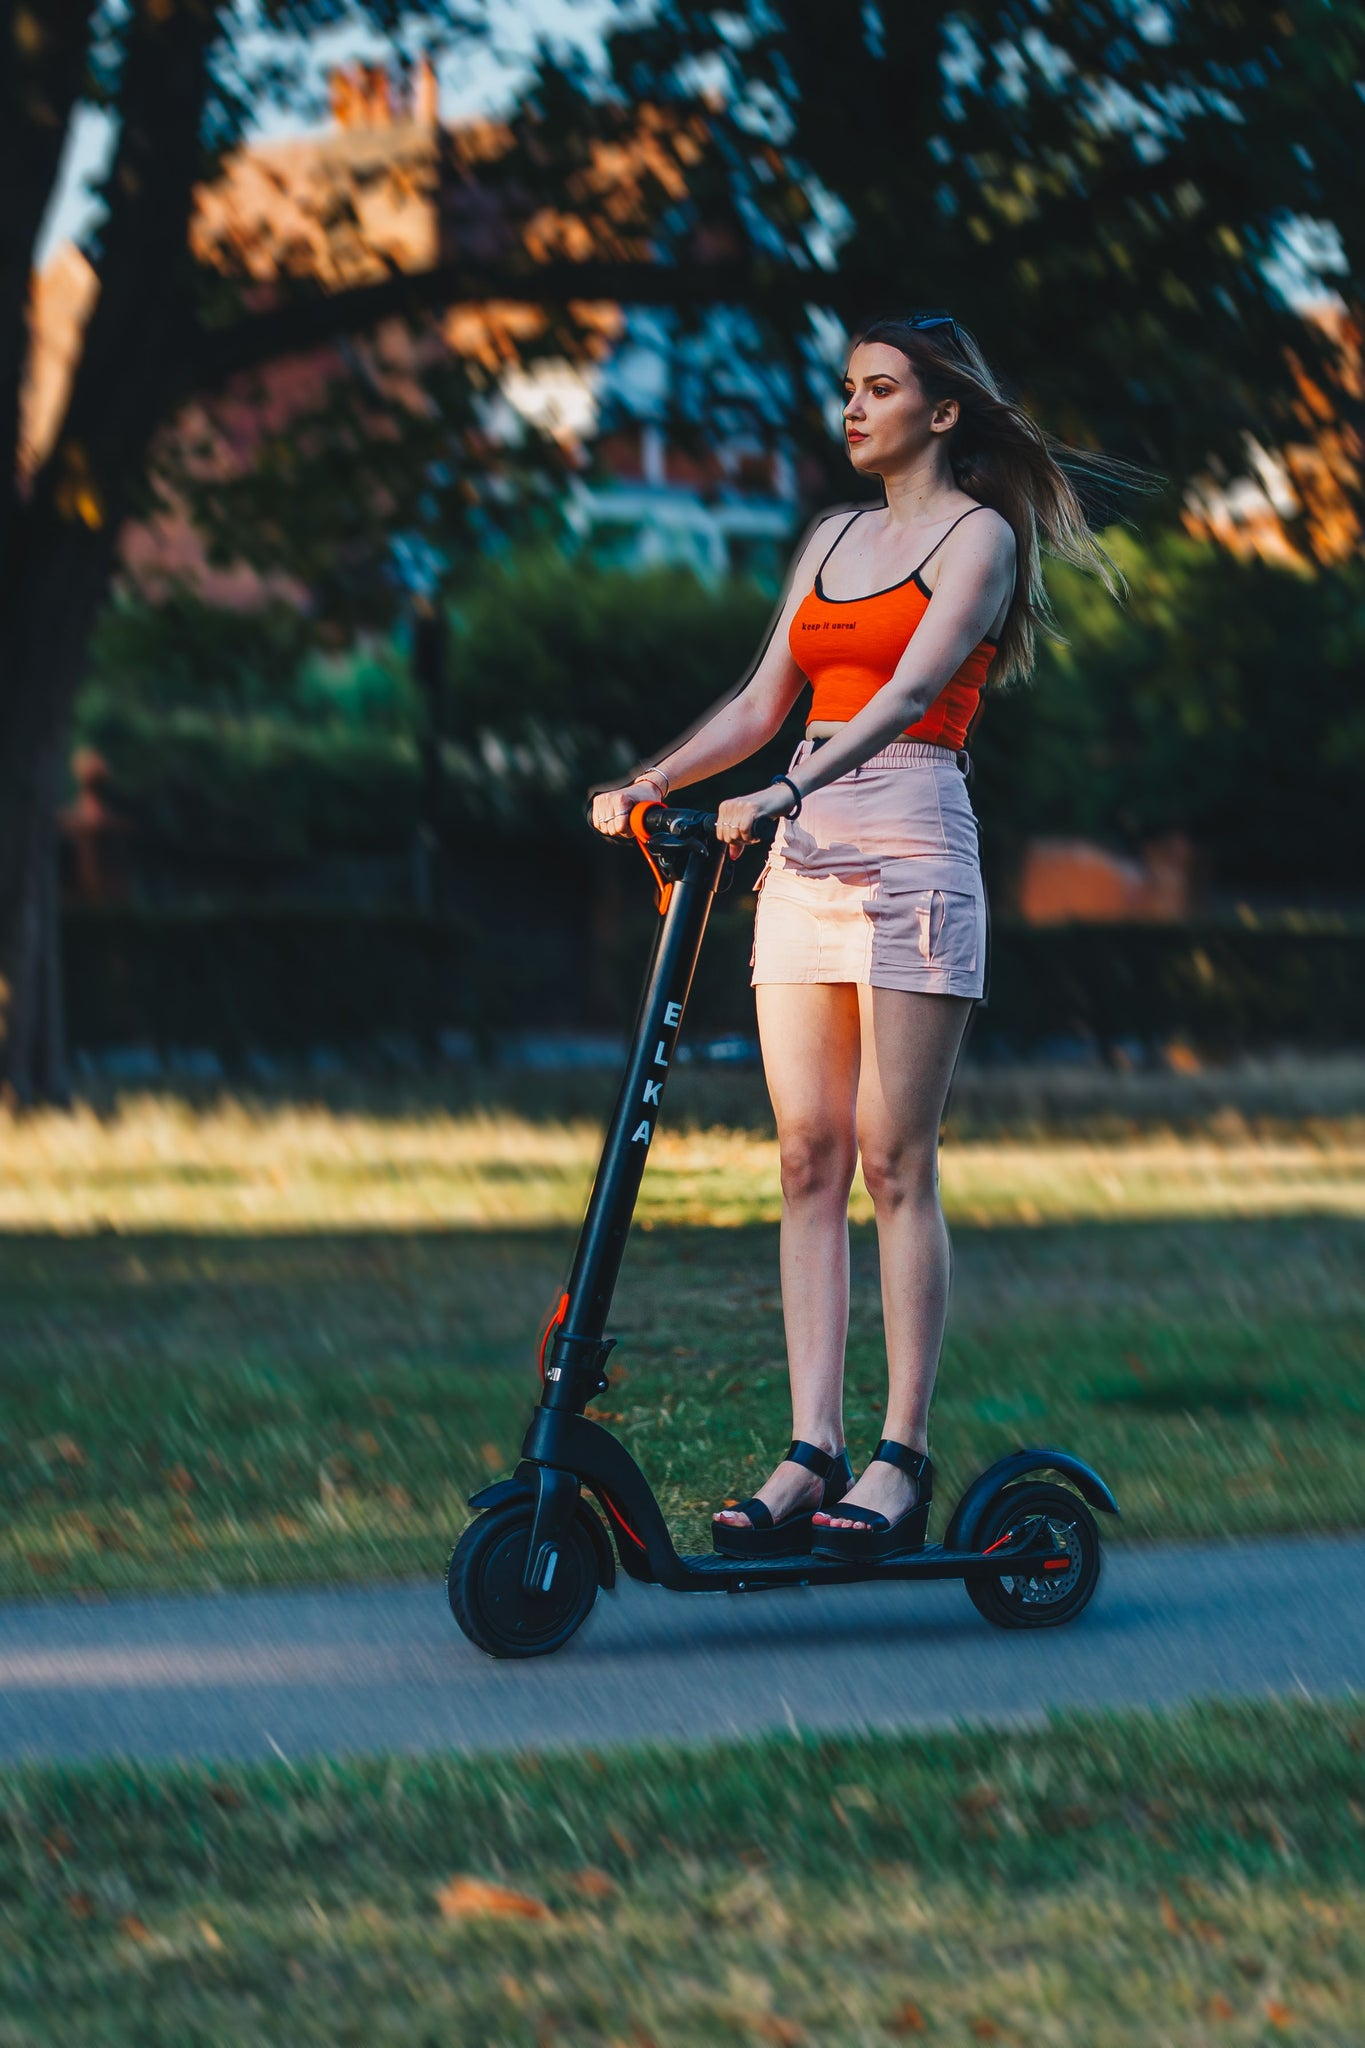 girl riding scooter in park